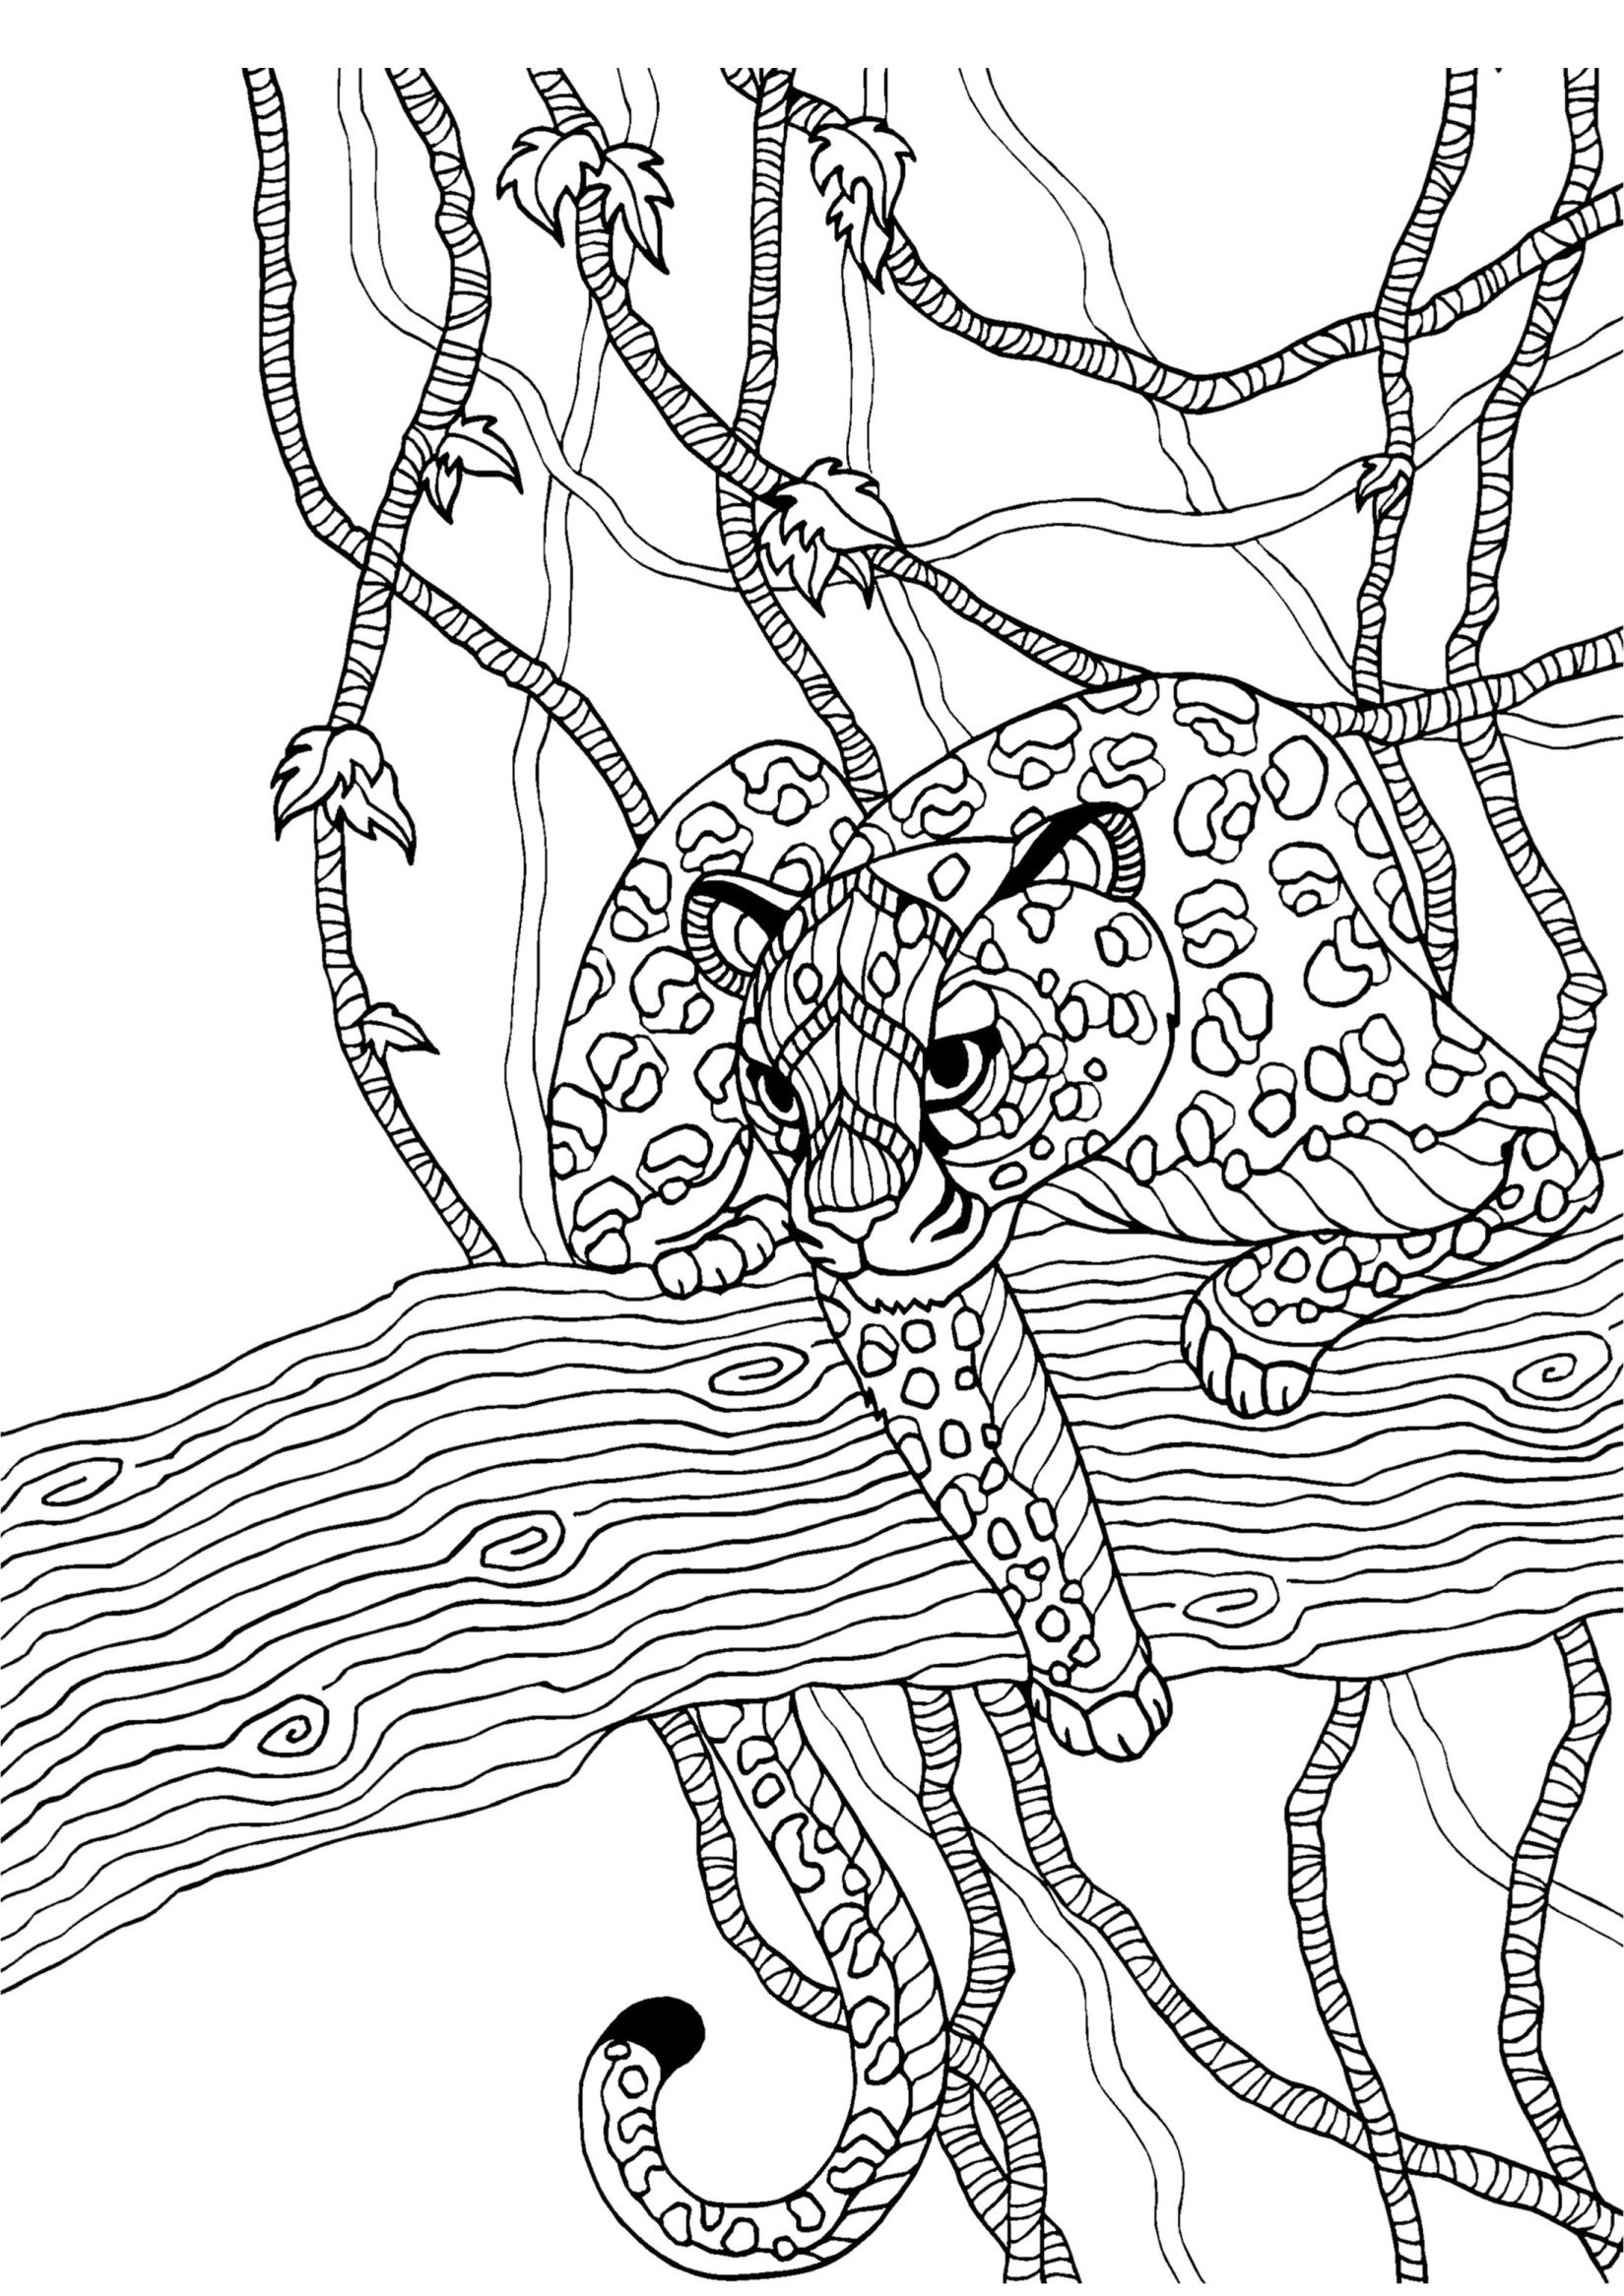 Cheetah adult colouring page